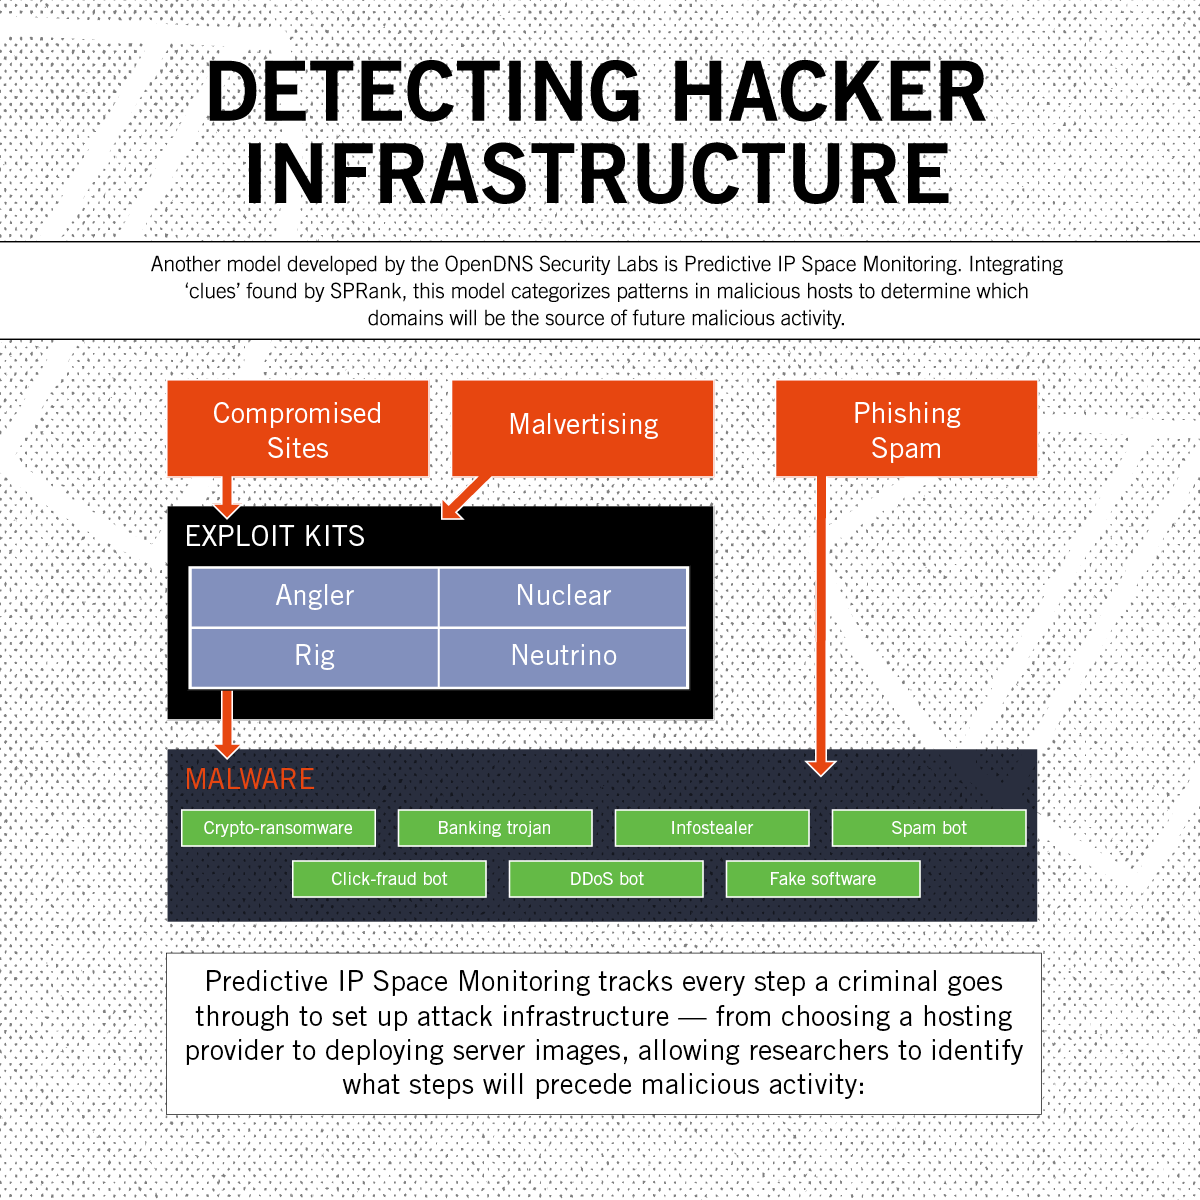 Detecting Criminal Infrastructure